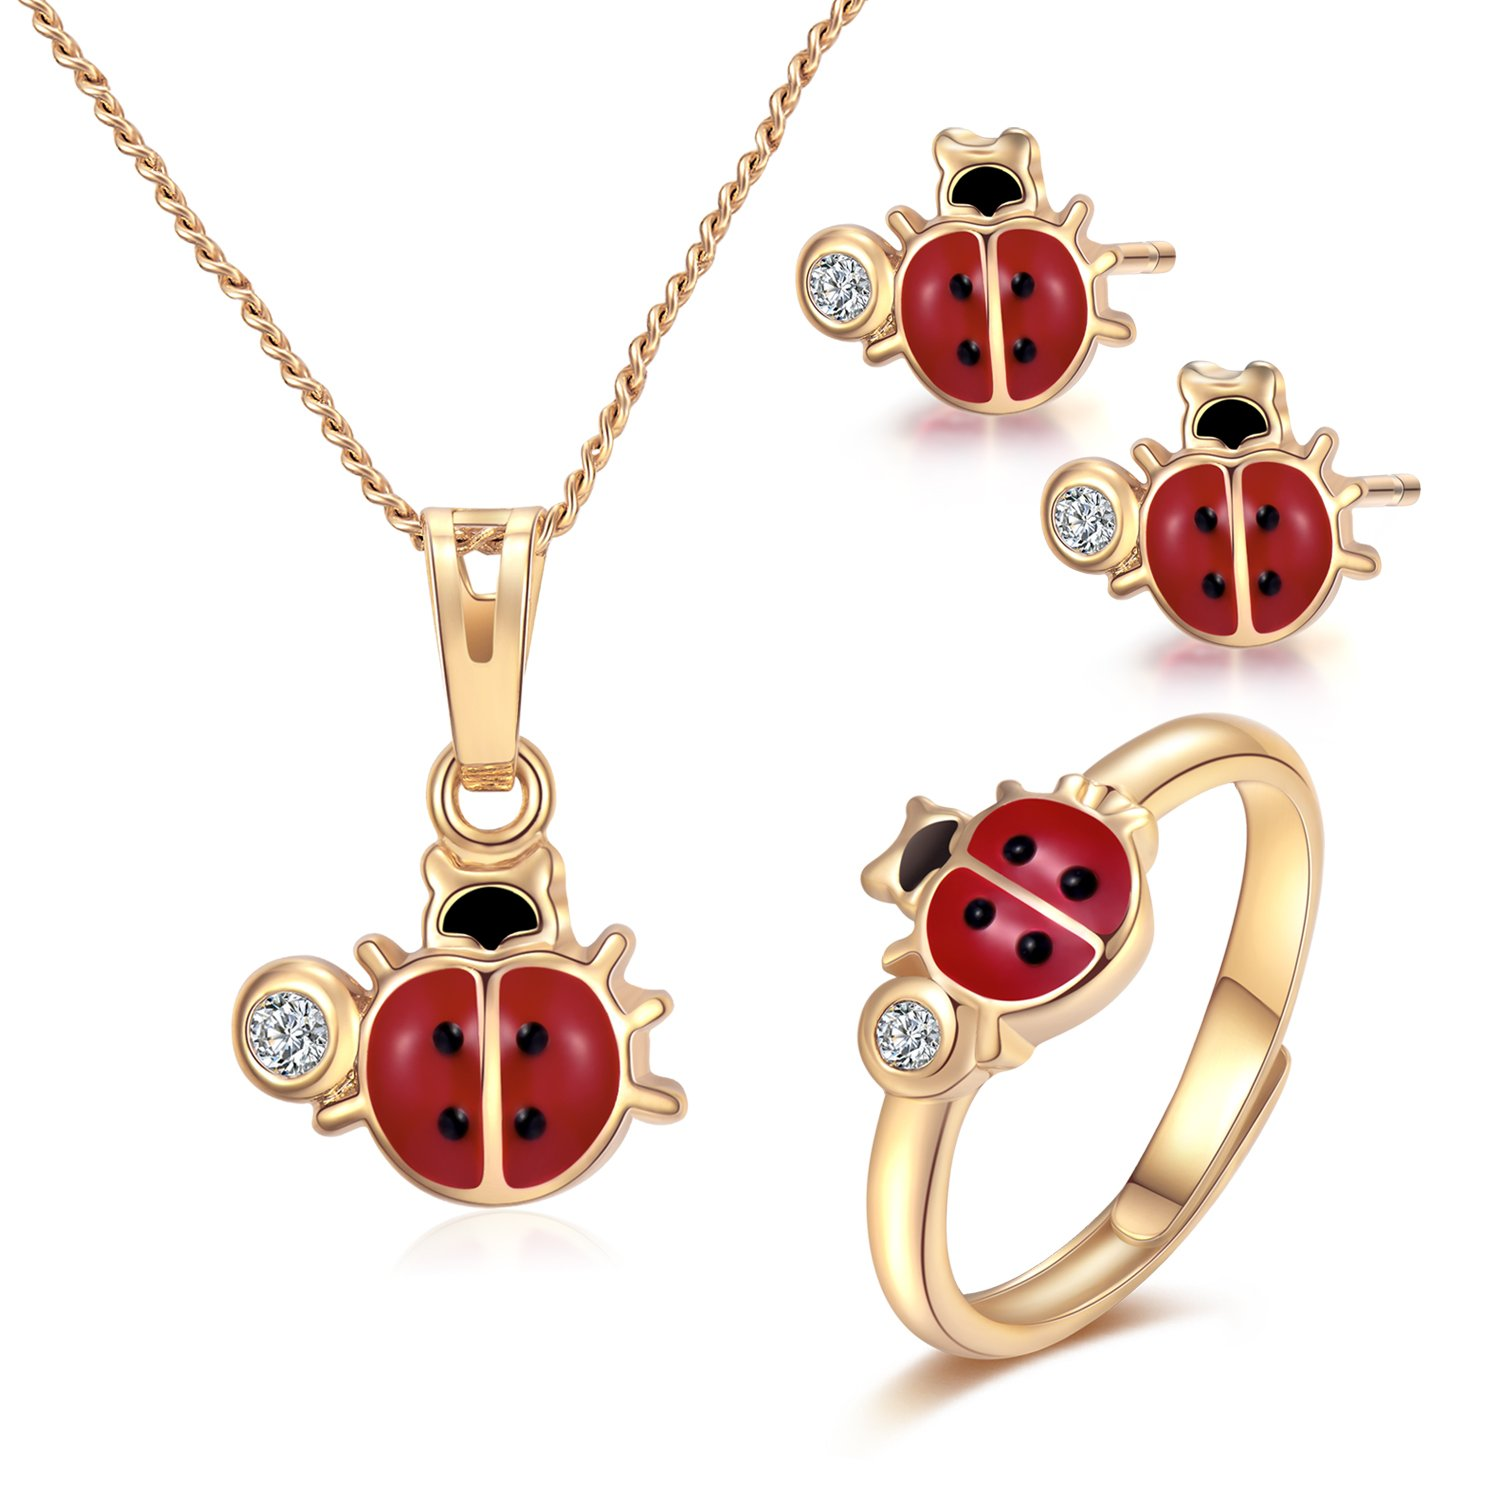 "Mouttop Ladybug Pendant Necklace, Charms 14k Gold-Filled Red and Black Ladybug Pendant Necklace Rings Set Jewelry for Kids,15"" (Ladybug)"